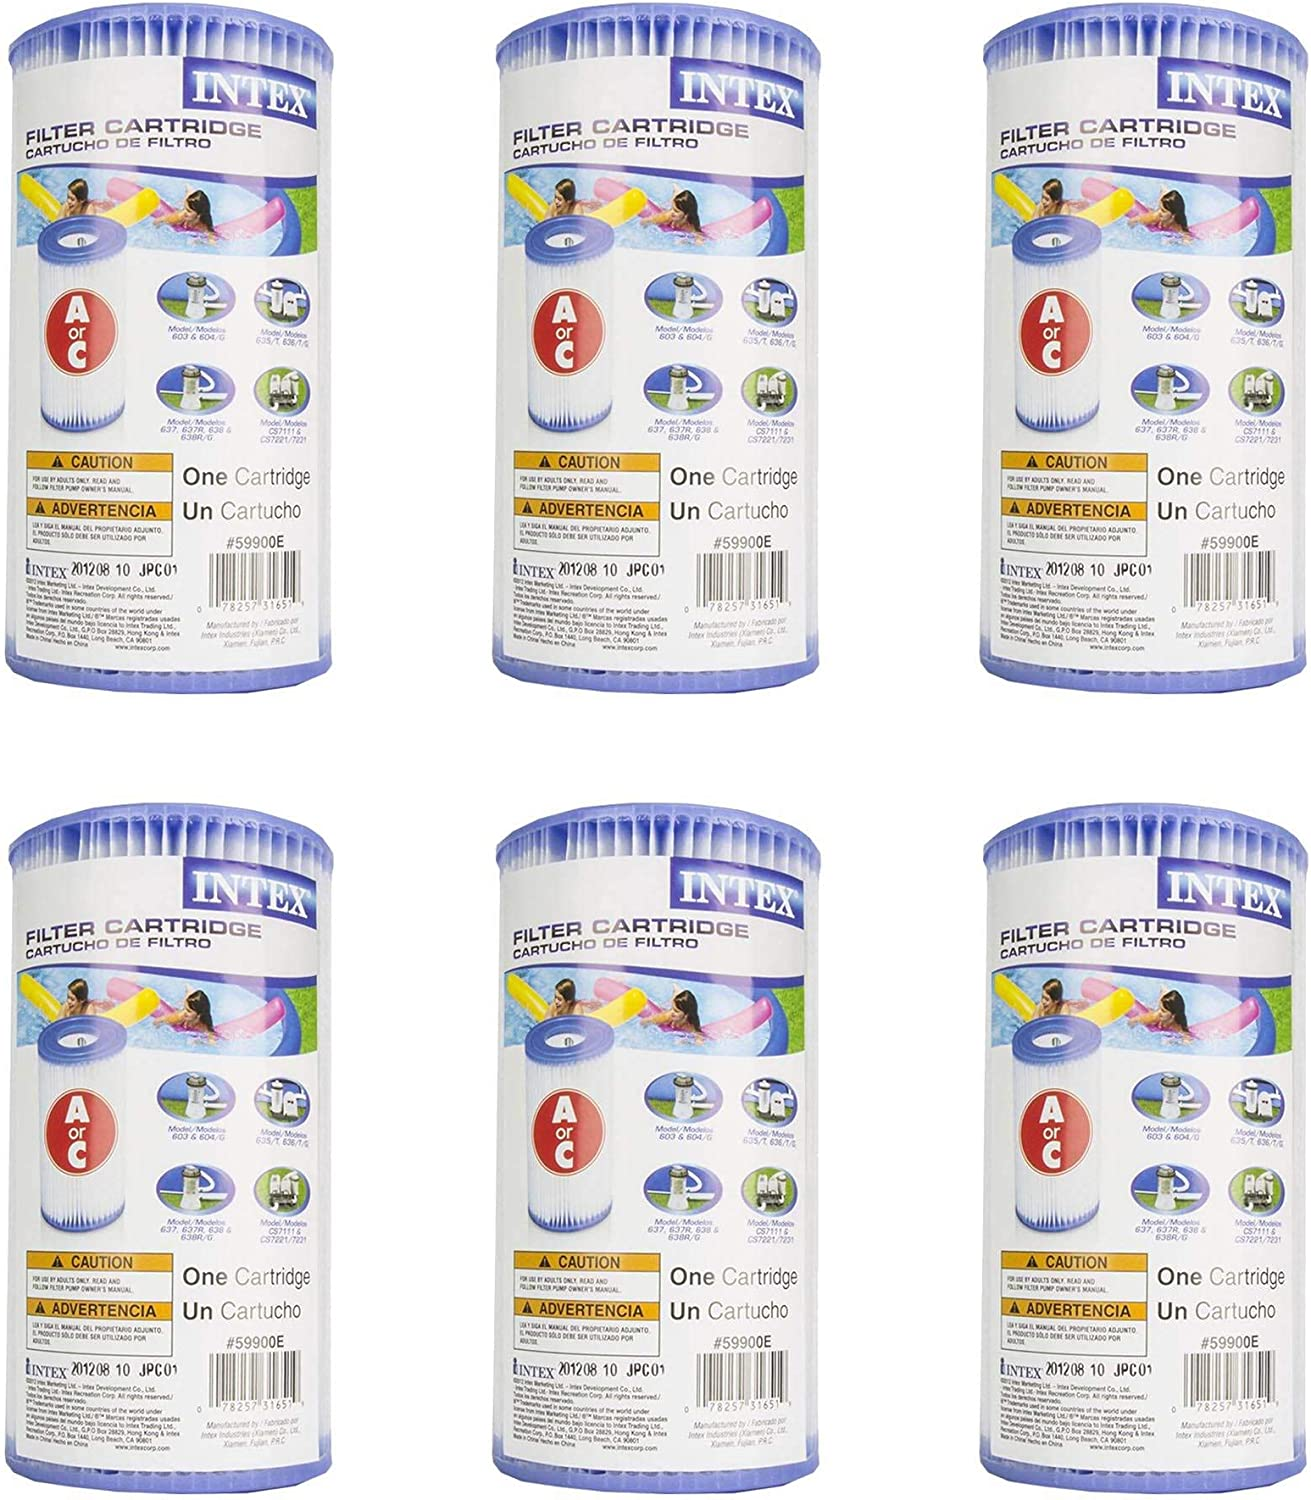 (Pack of 6) Intex 29000E/59900E Easy Satz Pool Replacement Type ein or C Filter Cartridge